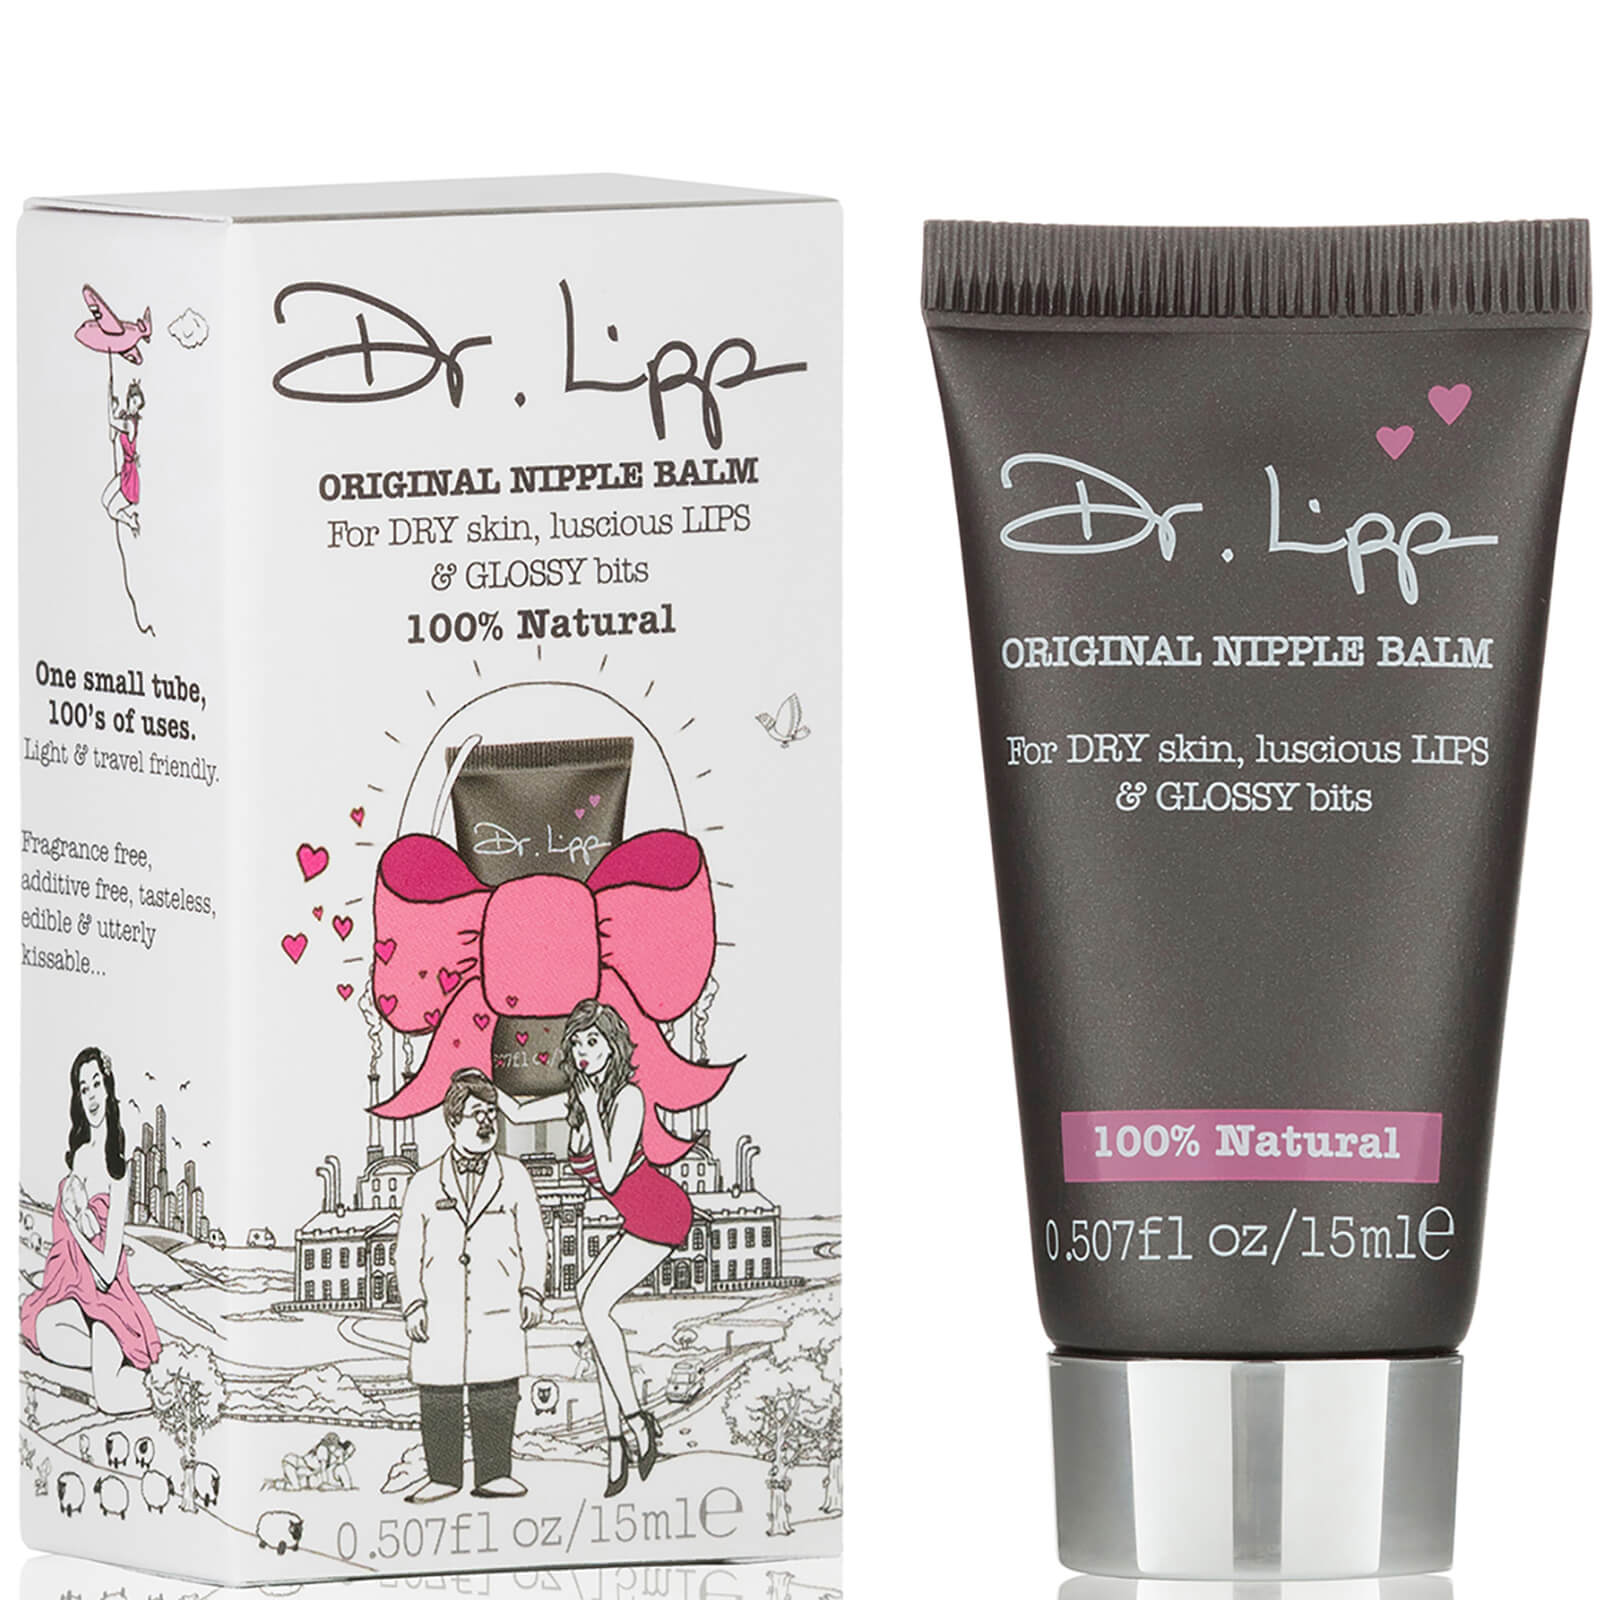 Dr Lipps Original Nipple Balm For Lips Free Shipping Lookfantastic Vaseline Lip Therapy Tiny Tube Rosy Description This